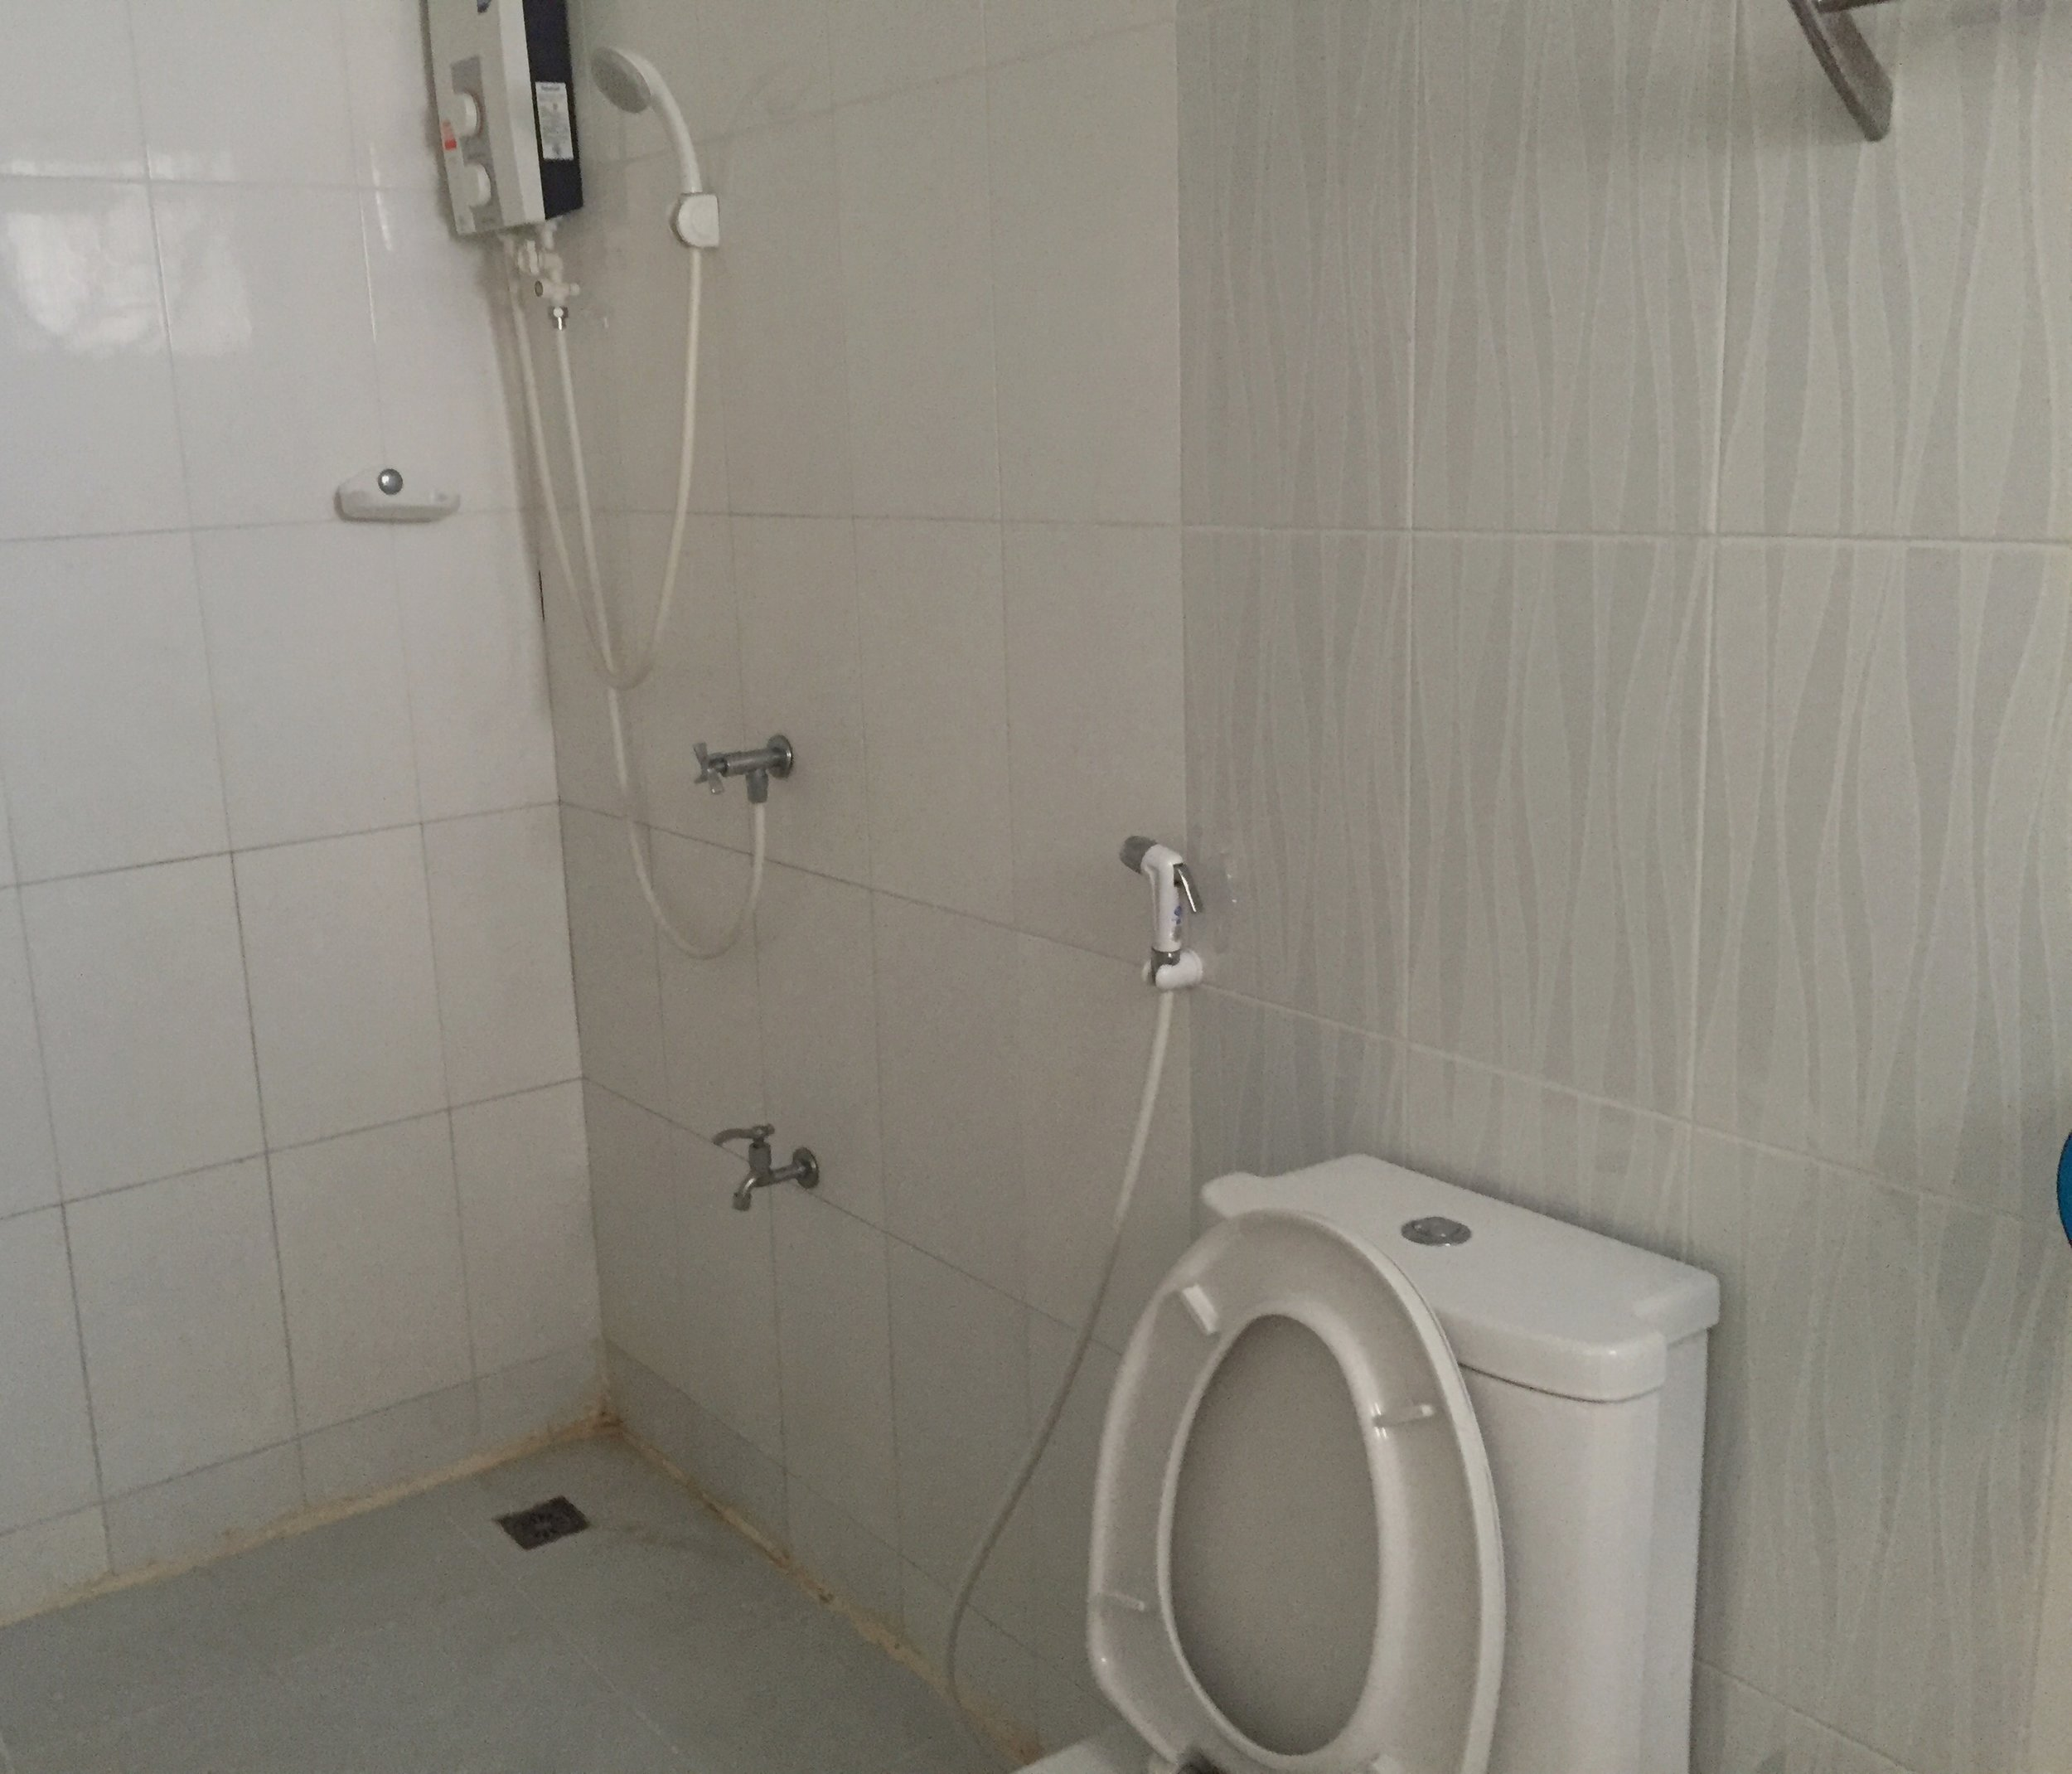 Typical thai style bathroom. Note the shower is right next to the toilet